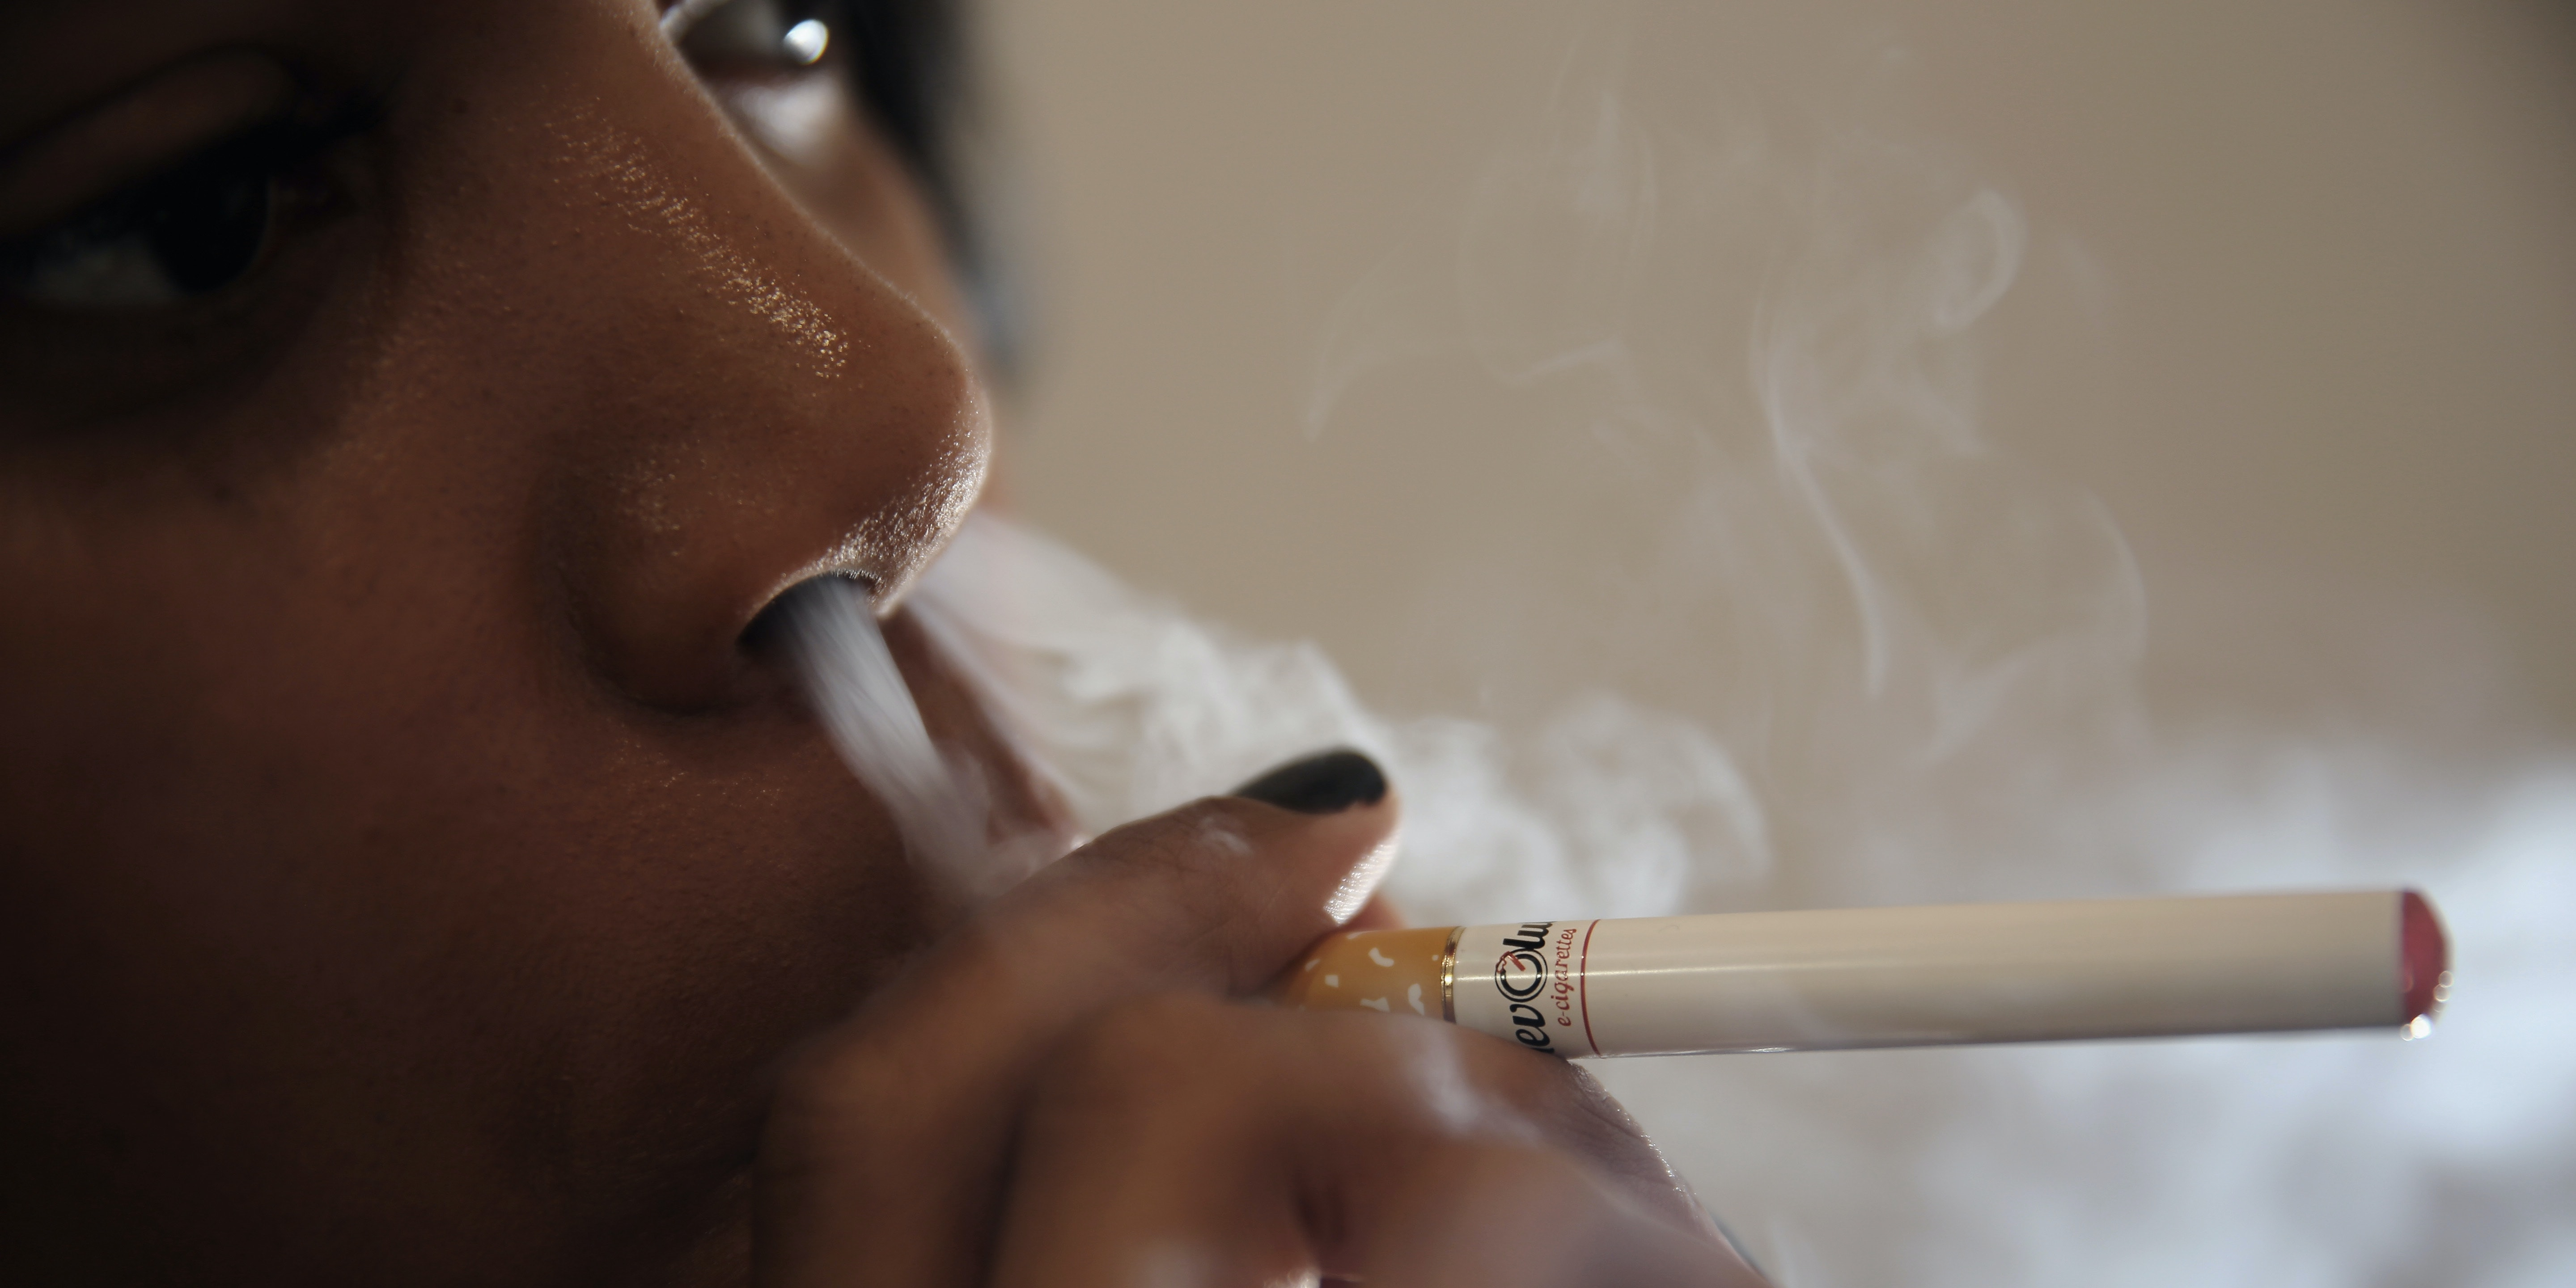 New FDA Rules Mean Vapers Will Finally Know the Ingredients in Their E-Cigs